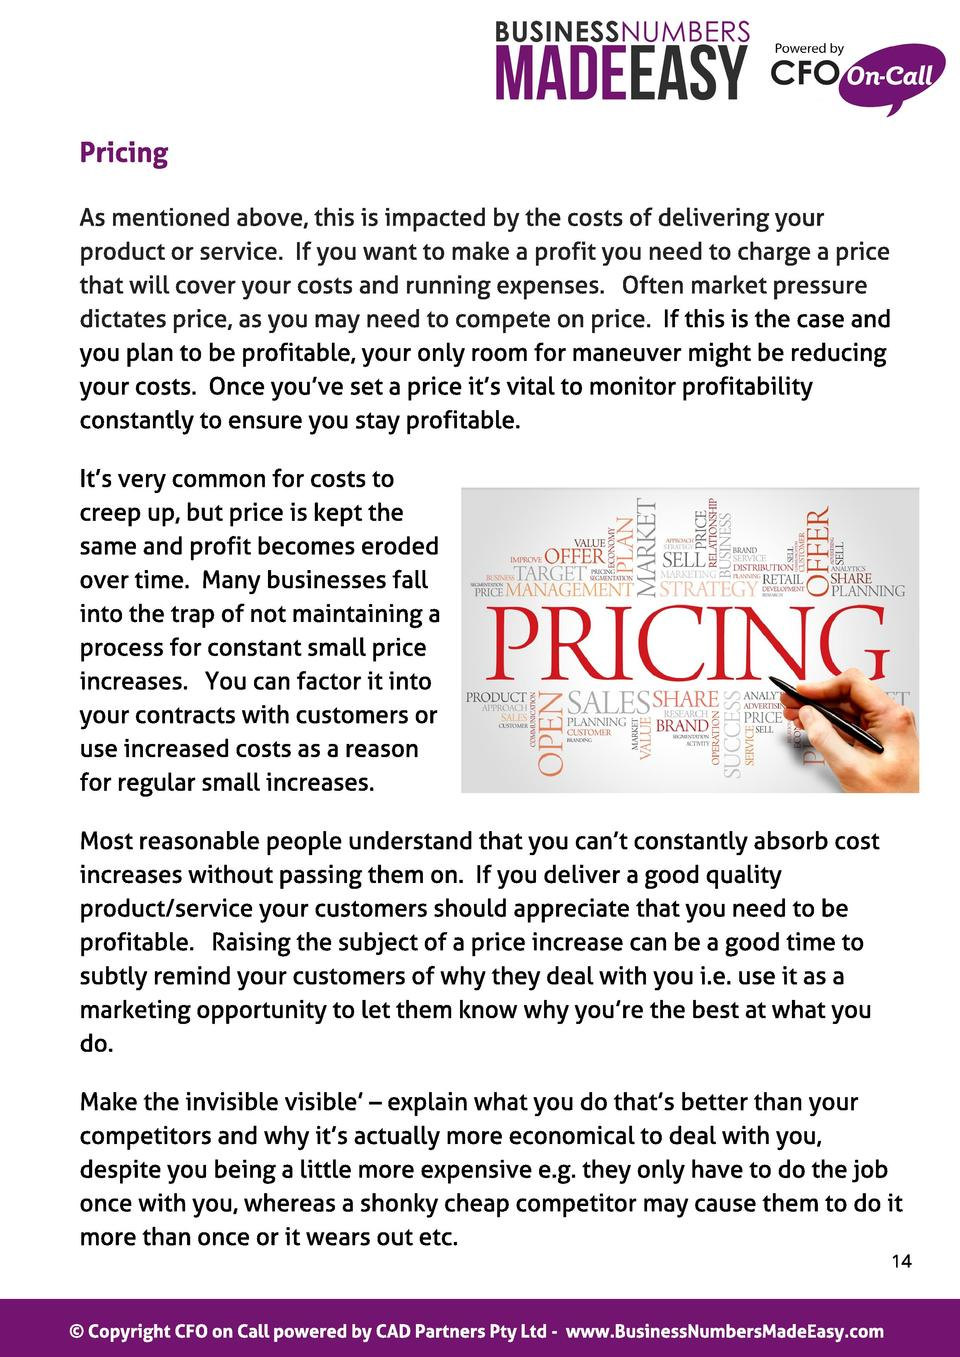 Pricing As mentioned above, this is impacted by the costs of delivering your product or service. If you want to make a pro...